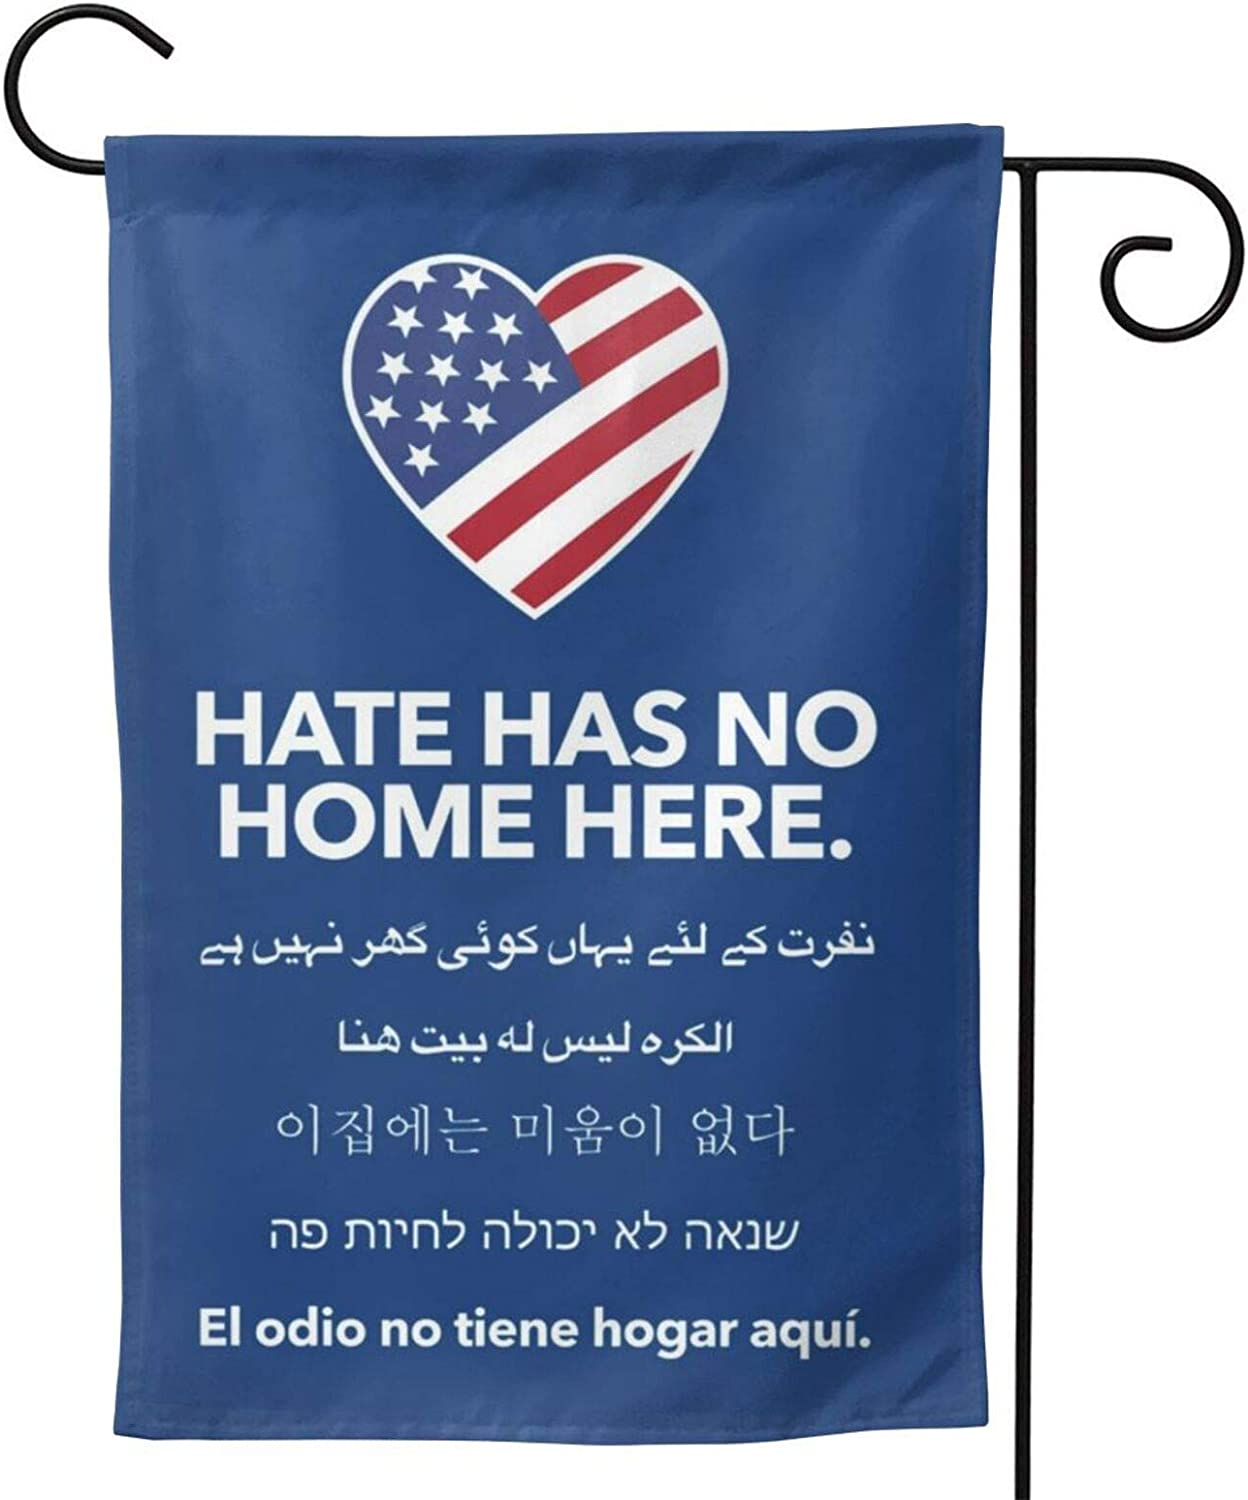 Season Garden Flags -Hate Has No Home Here Garden Flags - Double Sided Outdoor Holidays Yard Flags - Made of Polyester with Anti- ¨C Holidays Flags for 12 Months - 12.5¡±x18¡± Size